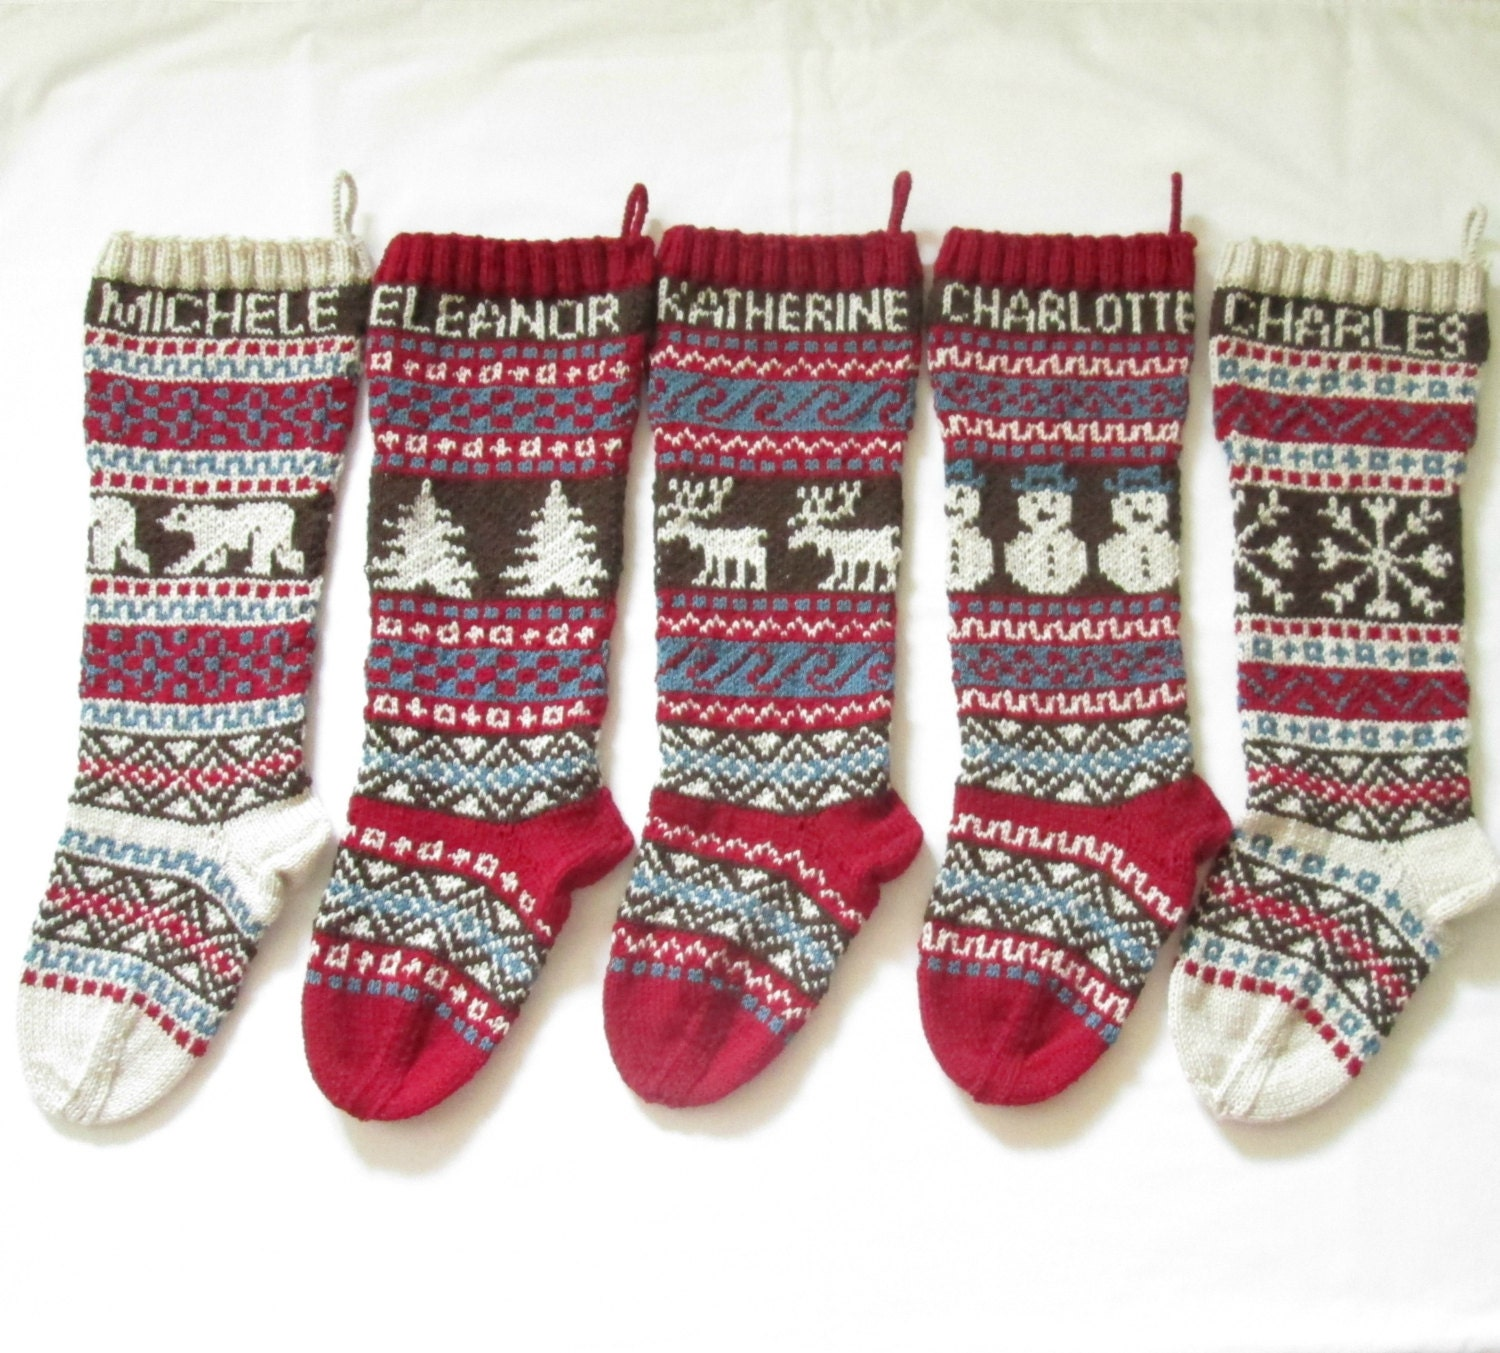 Knitted Christmas Stocking Patterns For Beginning : Personalized Knitted Christmas Stockings Set of 5 Hand